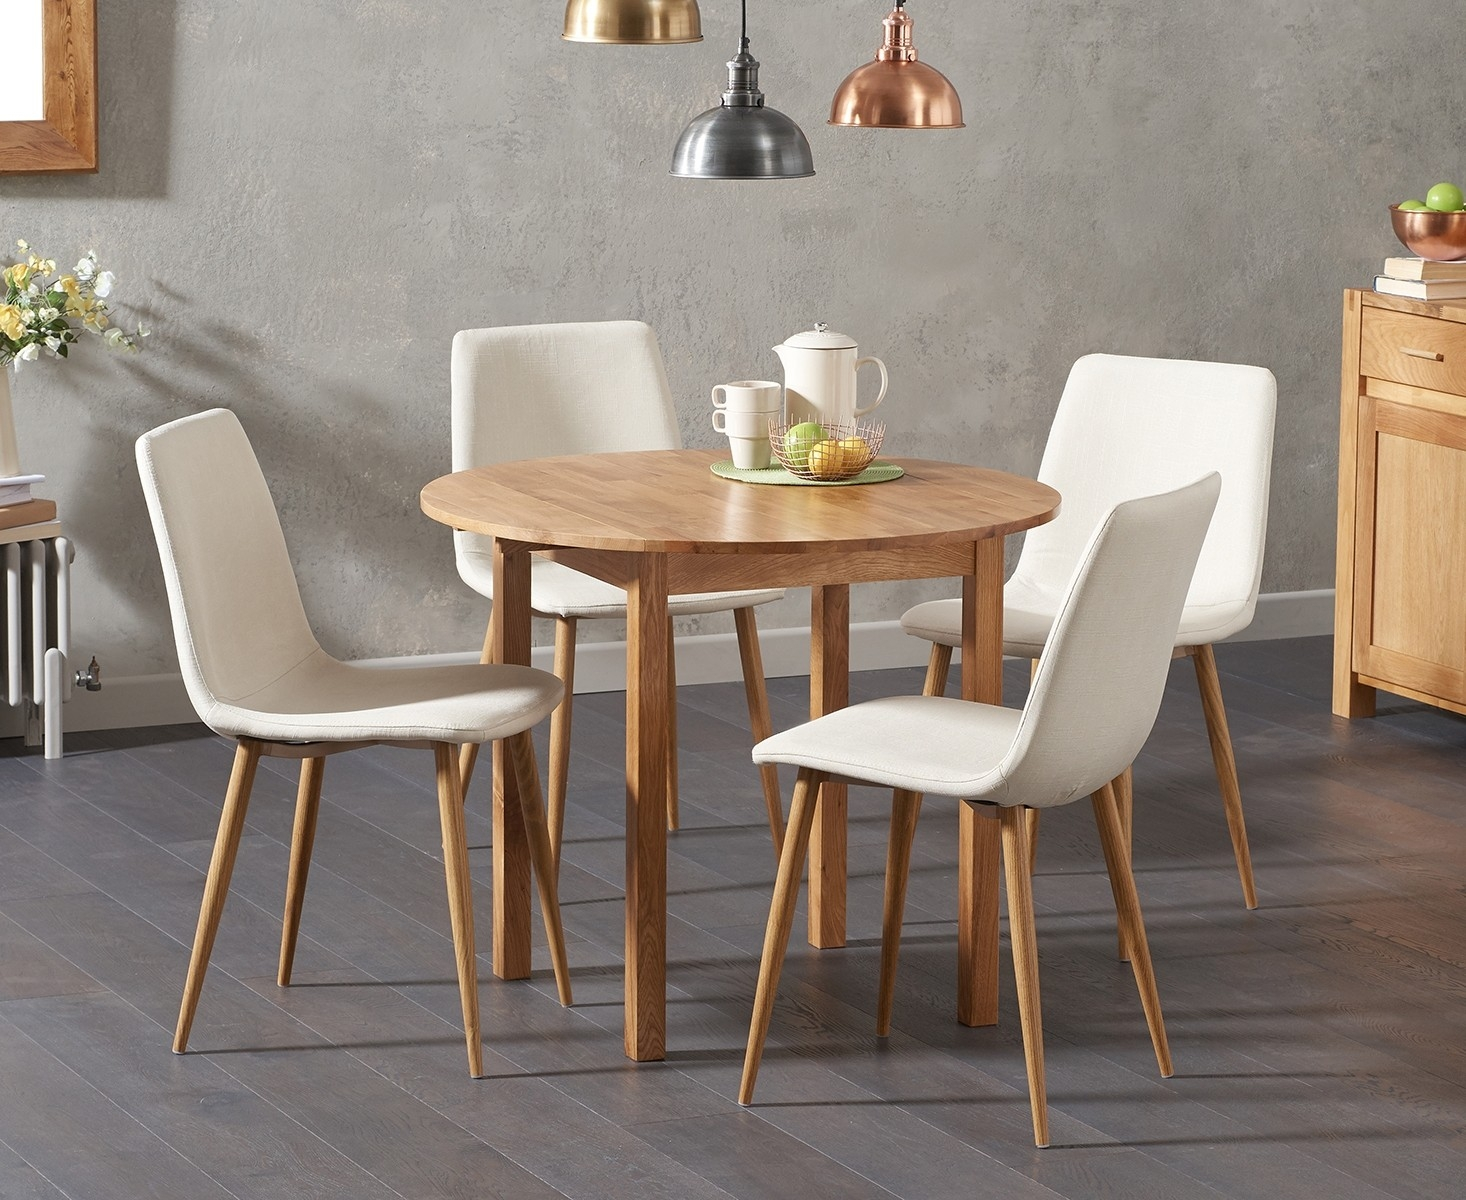 Oxford 90cm Solid Oak Drop Leaf Extending Dining Table with Hamburg Fabric Chairs